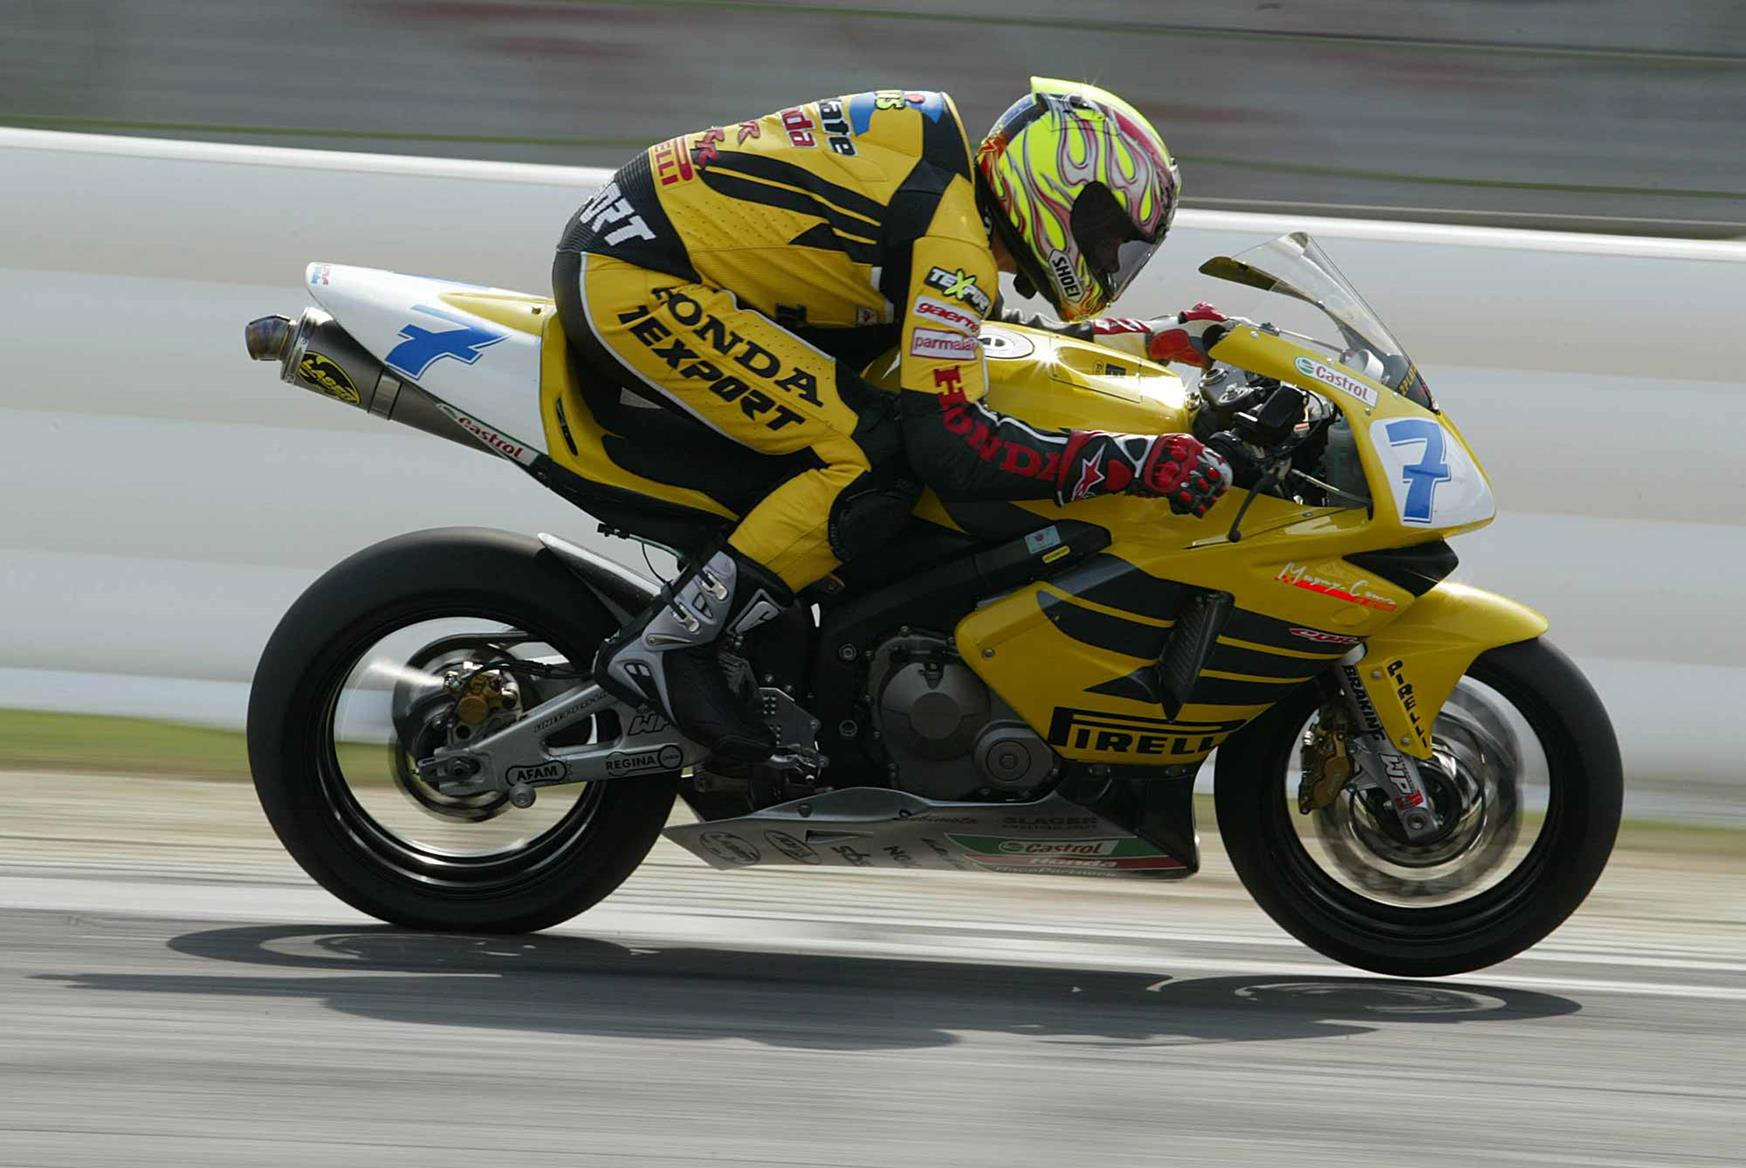 Vermeulen took the 2003 World Supersport crown with Ten Kate Honda